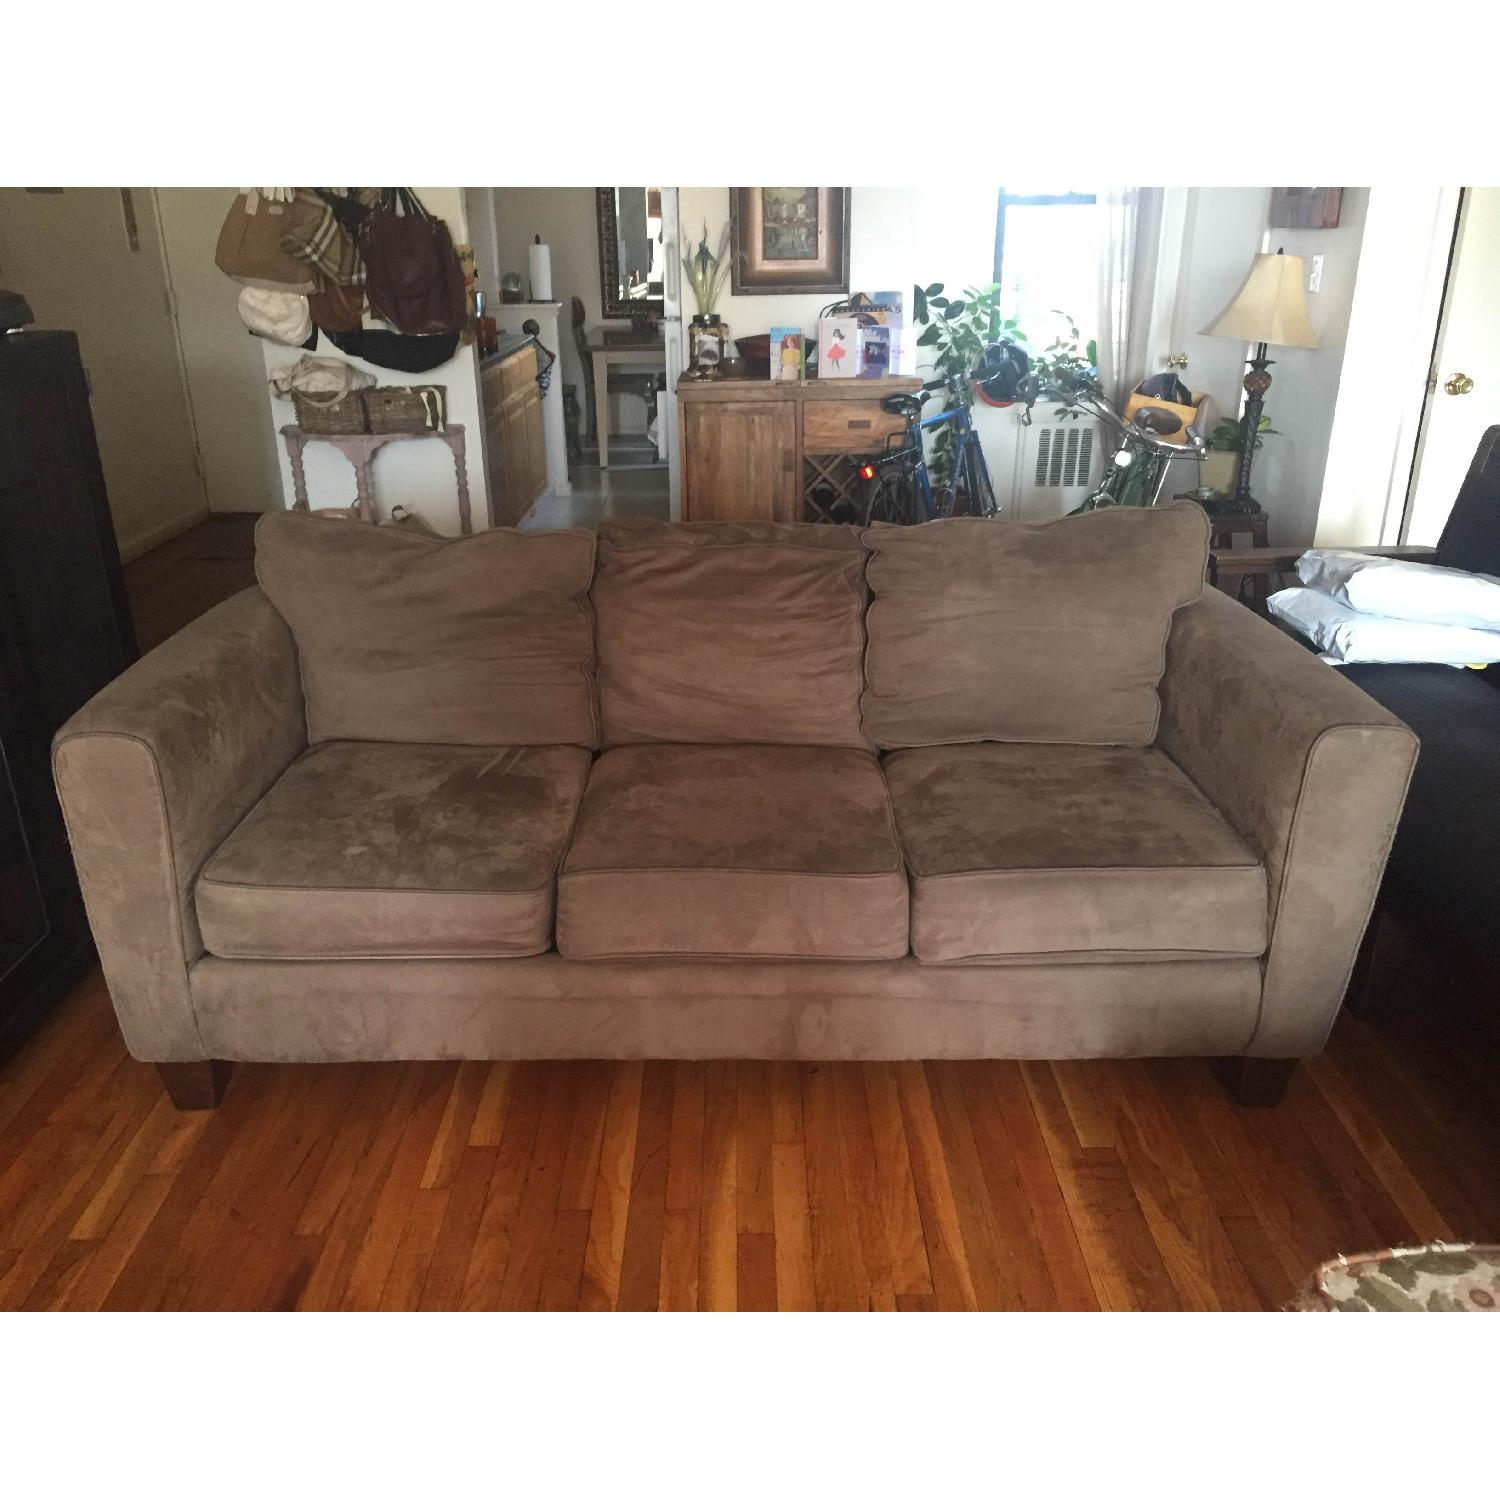 Olive Microsuede 3-Seater Couch & Ottoman - image-1